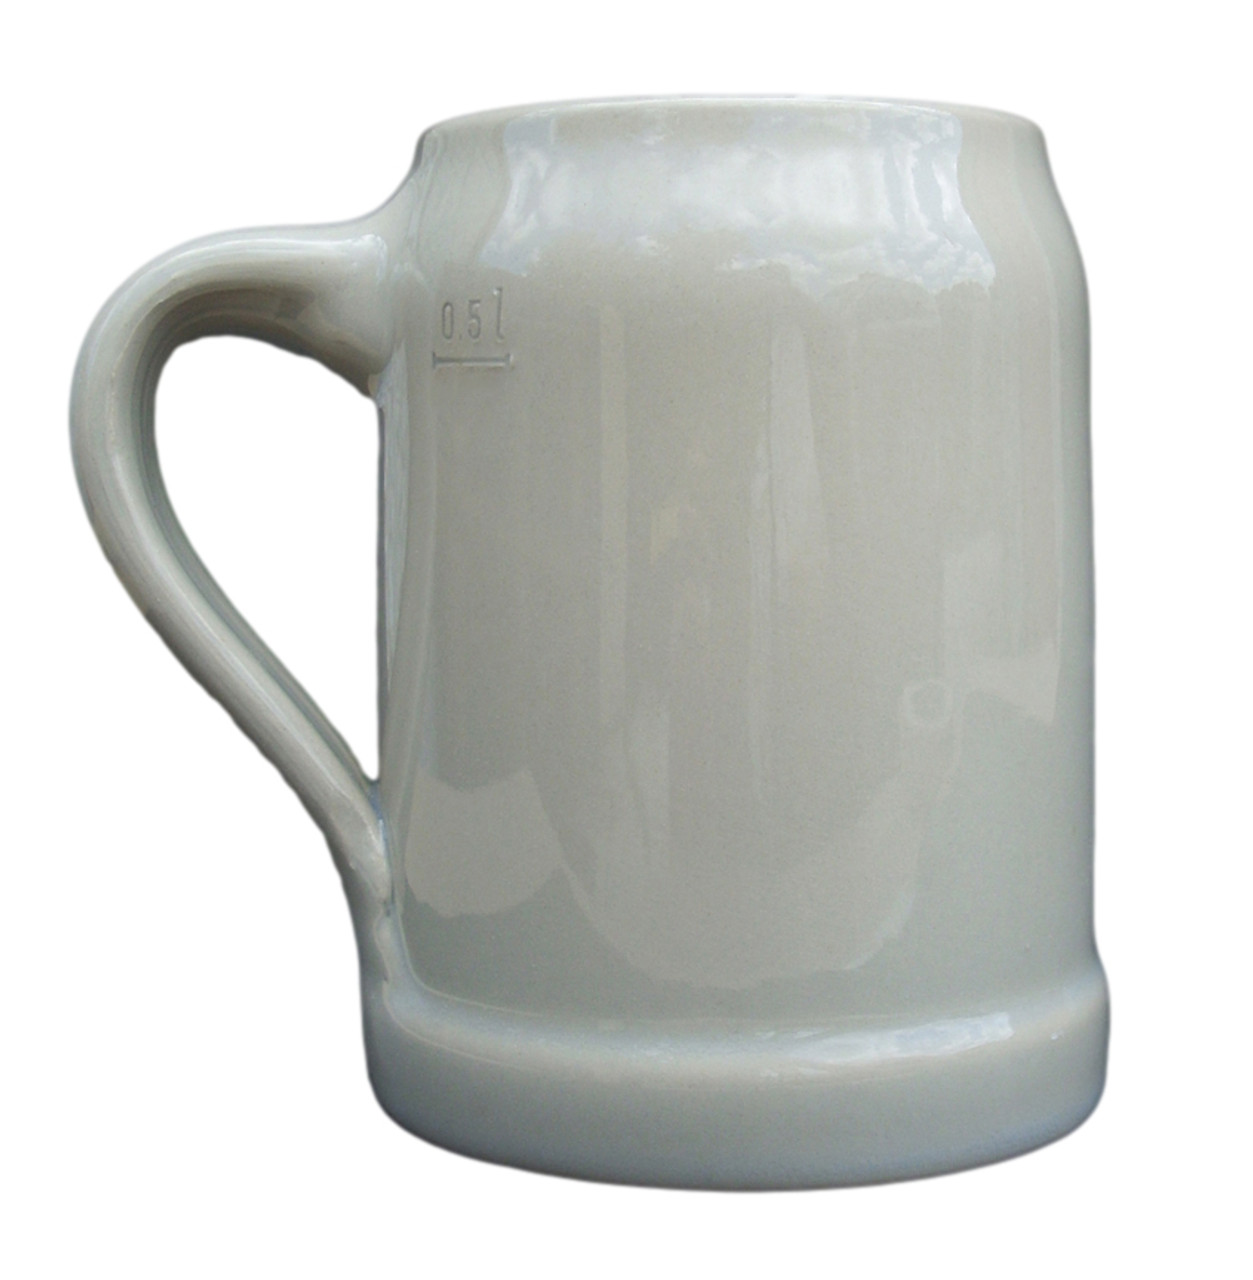 Deutschland and State Crests German Stoneware Beer Mug 0.5 Liter